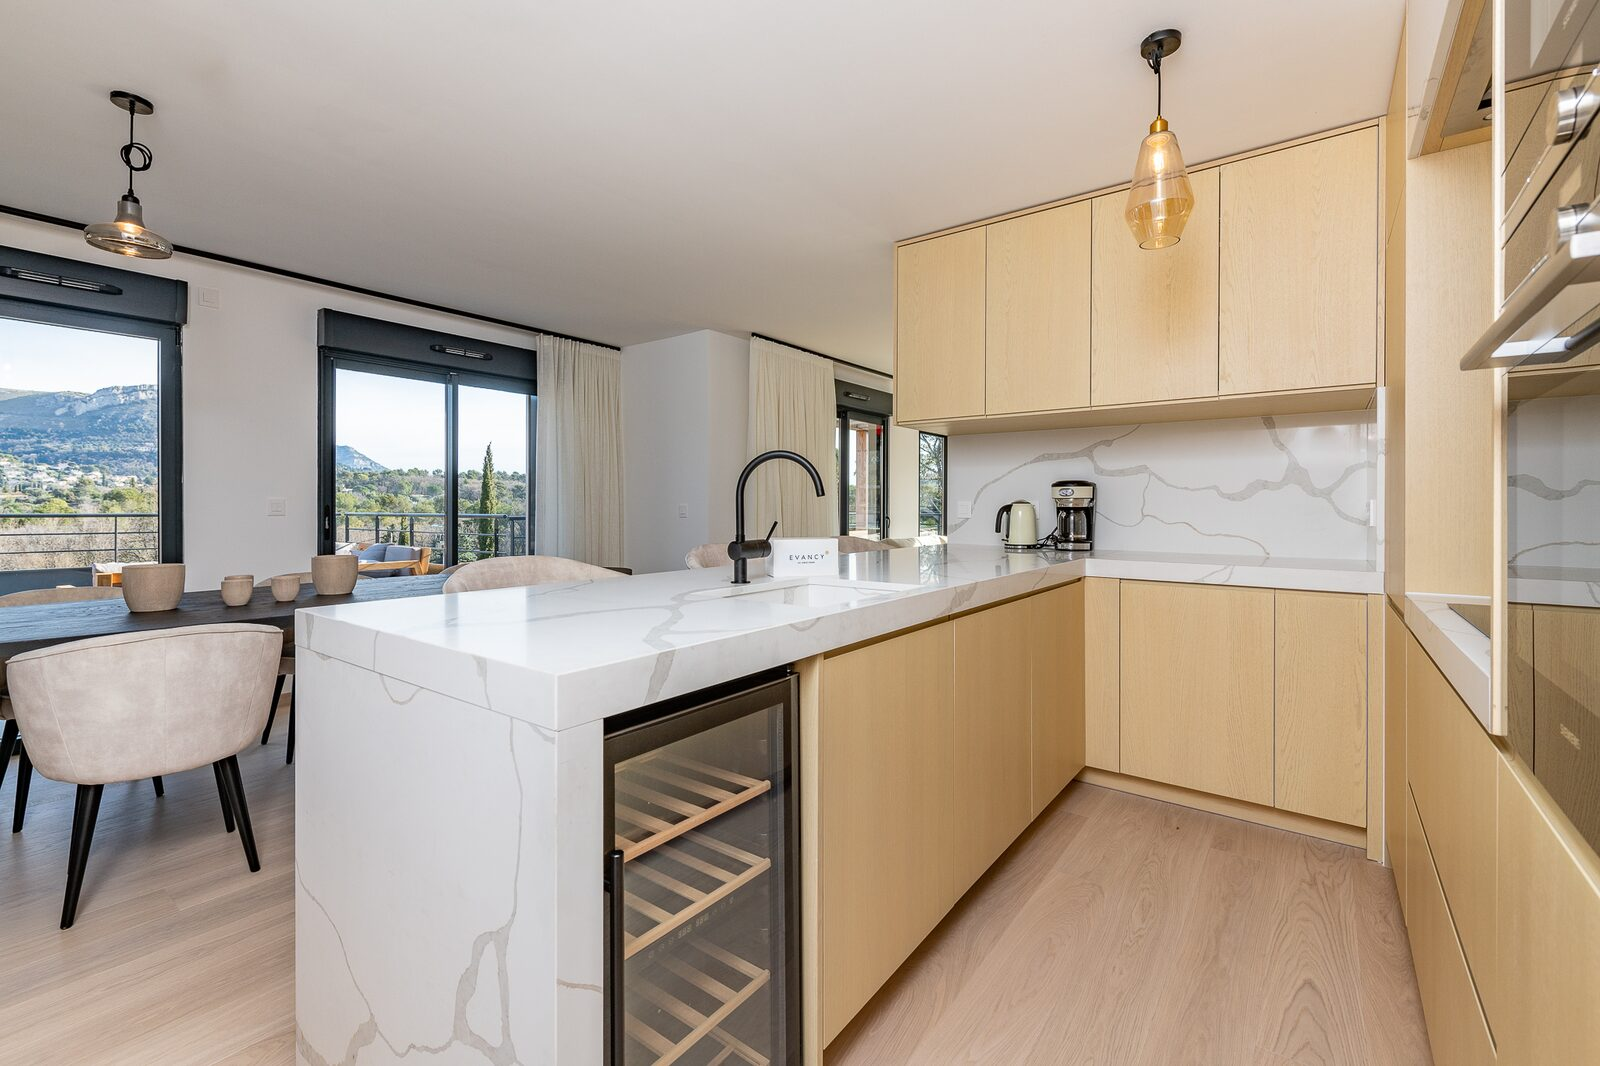 Ultra premium duplex penthouse for 9 people with 3 bedrooms & spacious terrace